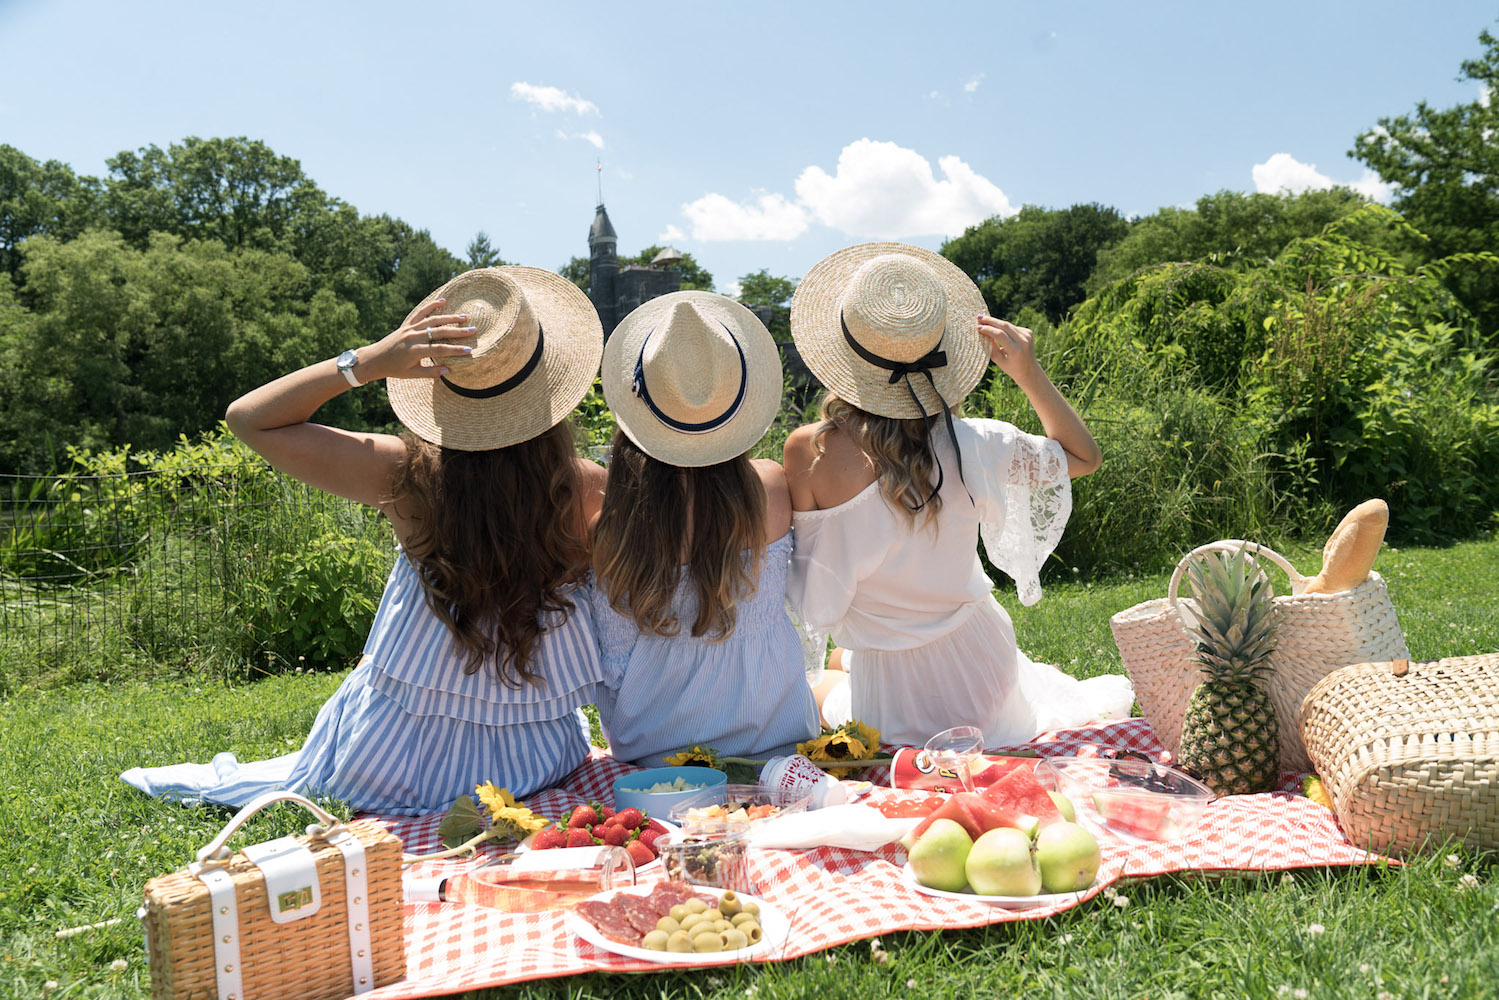 collaboration-sheinside-picnic-central-park.-fashion-blog-shein-allbuenothings